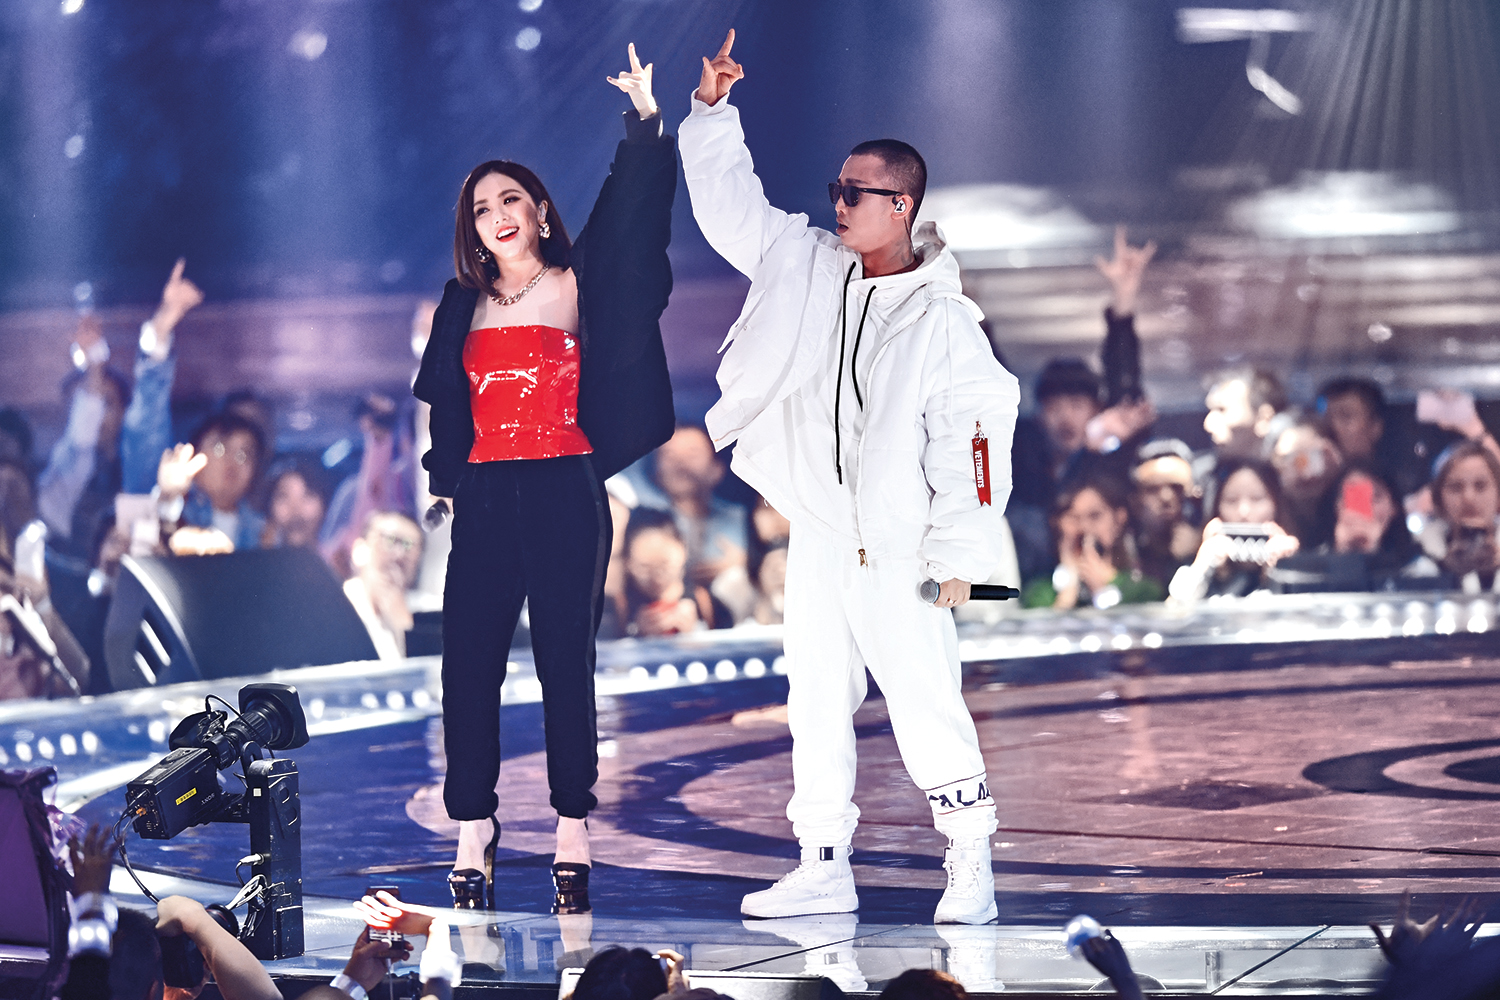 The Chinese rapper Gai, right, who tied for first place on The Rap of China, performs with the Hong Kong singer G.E.M. in Guangzhou, southern China, on Dec. 31, 2017.